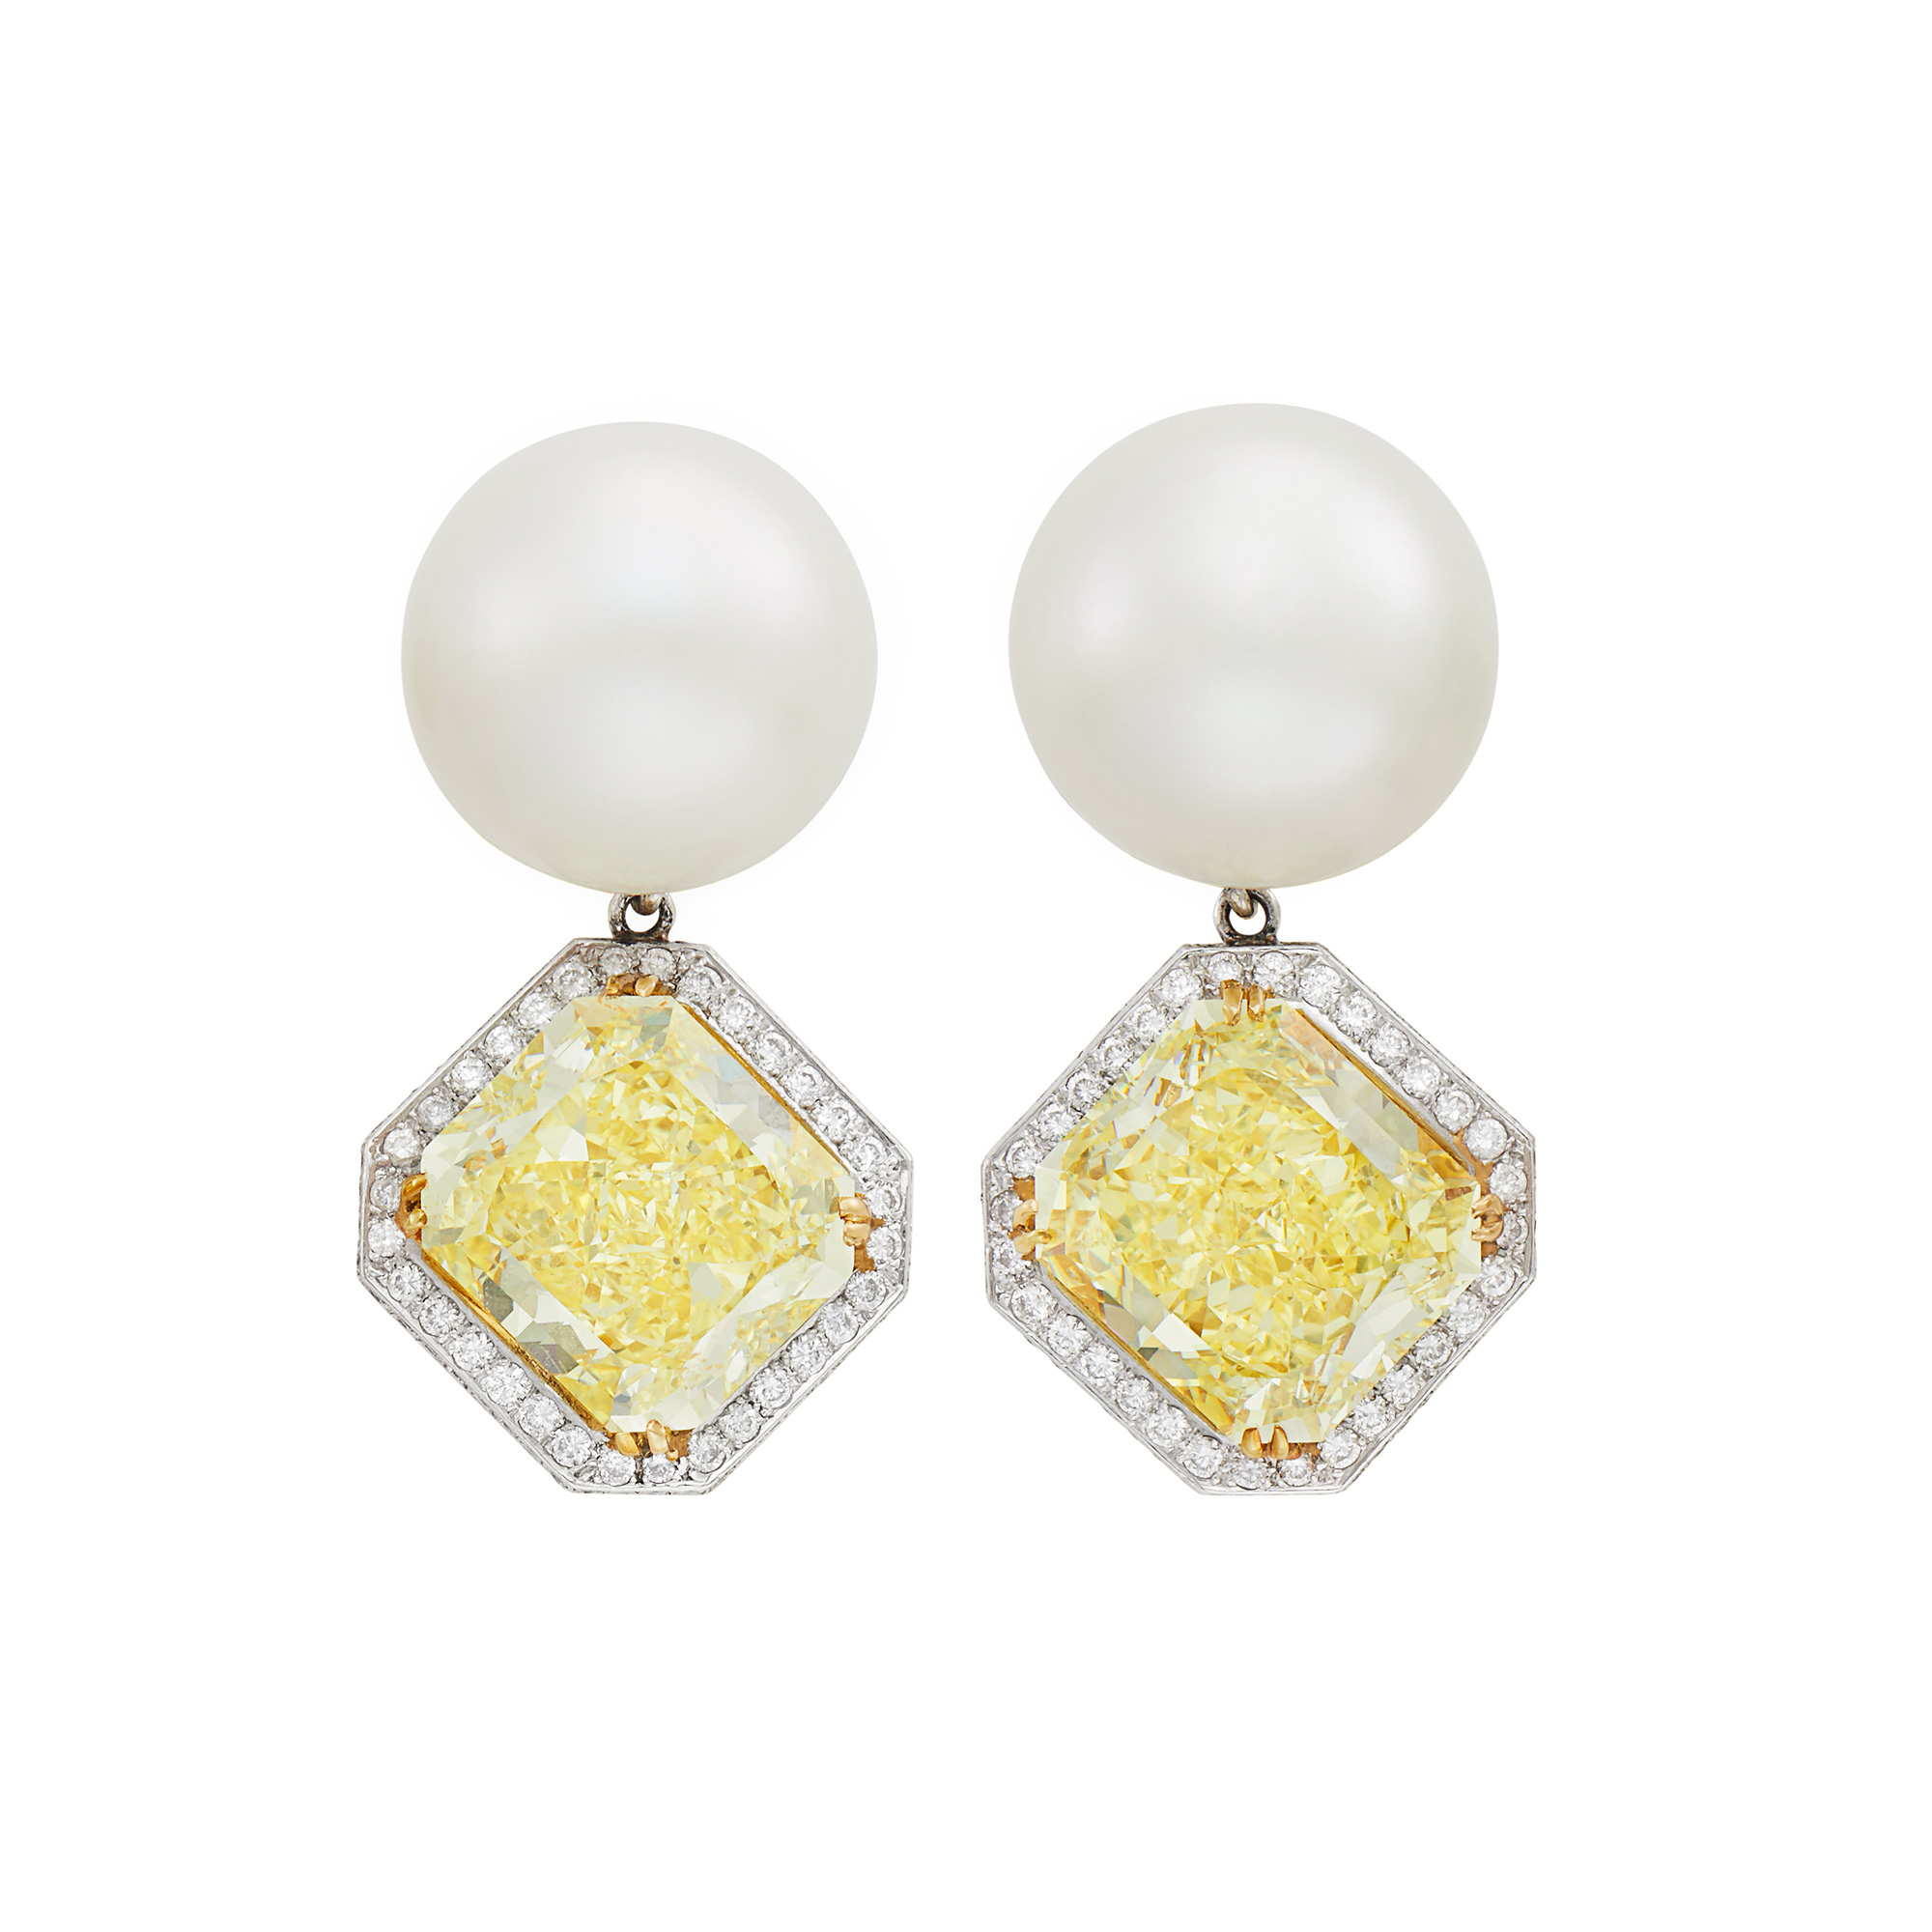 Lot image - Pair of Platinum, Gold, South Sea Cultured Pearl, Fancy Intense Yellow Diamond and Diamond Pendant-Earrings